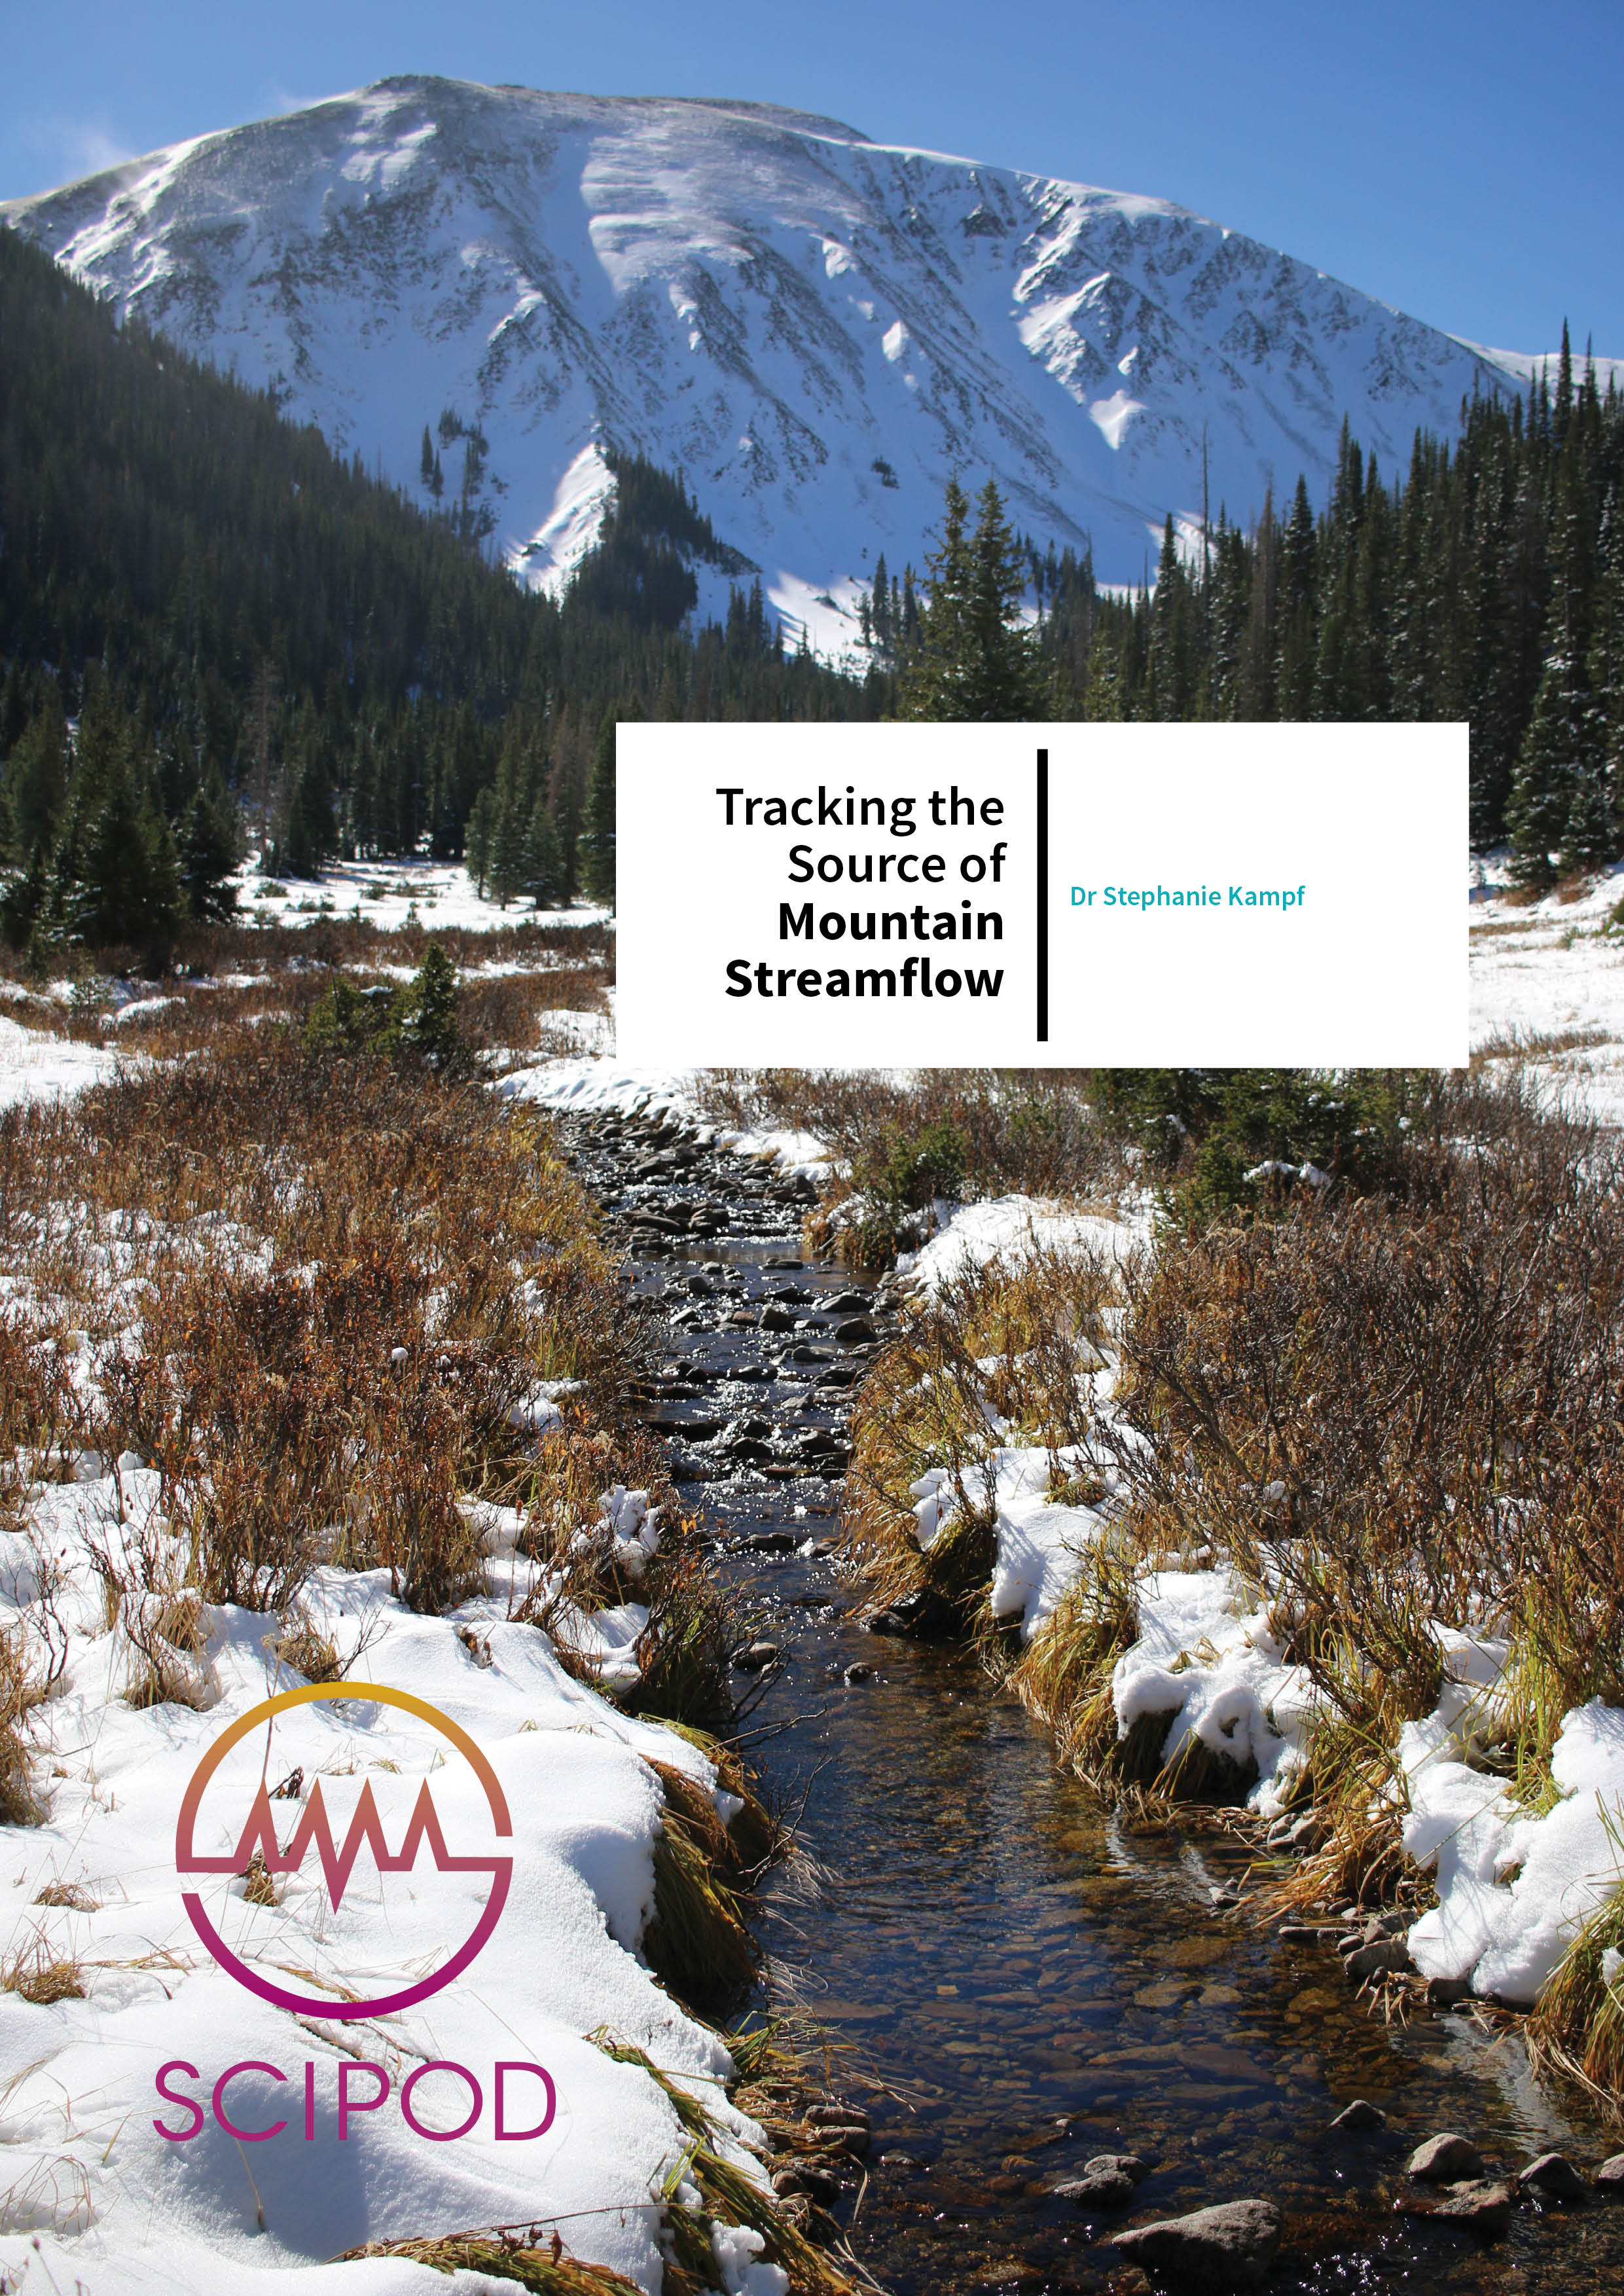 Tracking the Source of Mountain Streamflow – Dr Stephanie Kampf